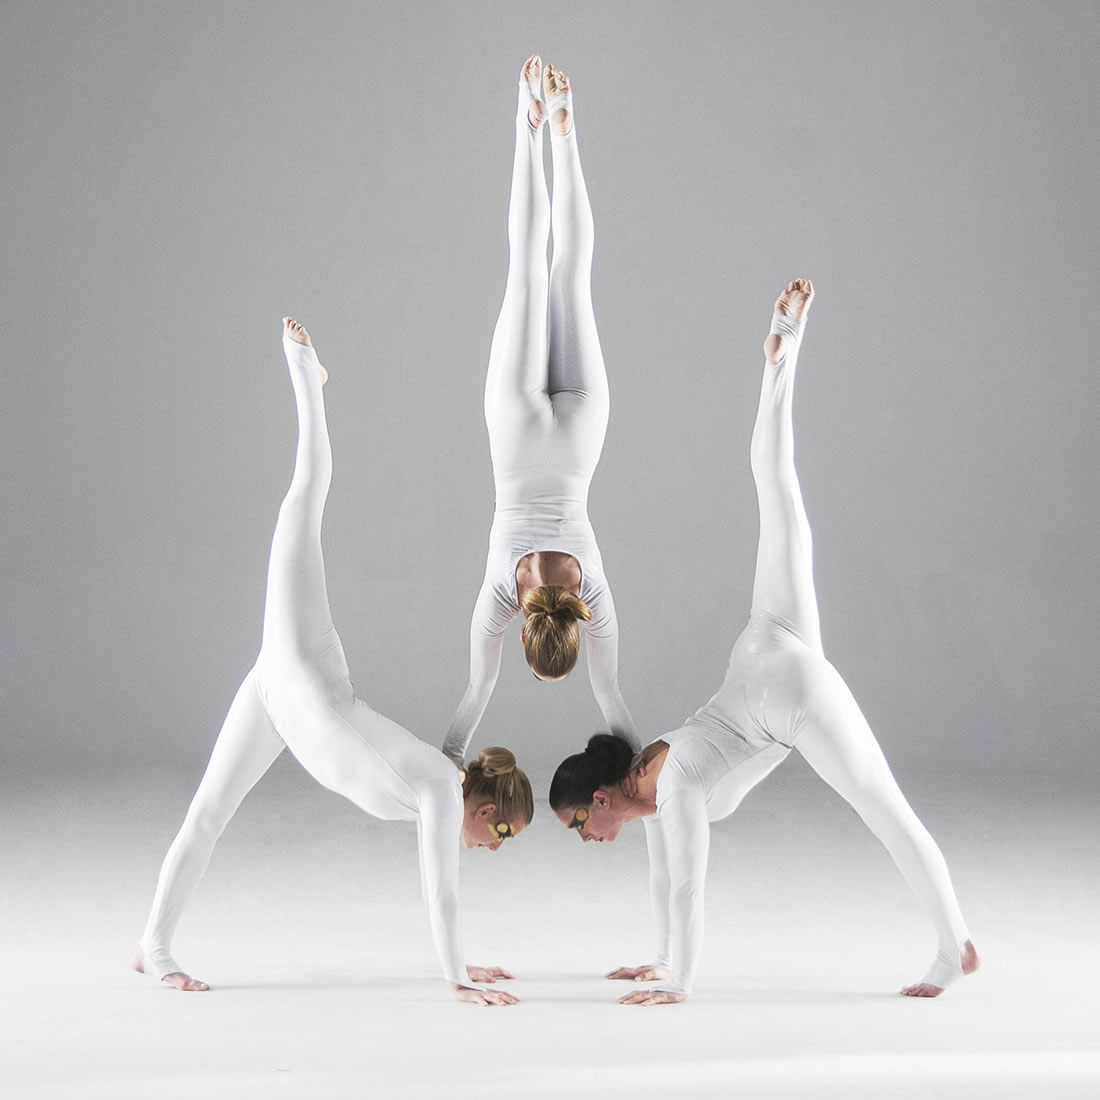 Groundbased Shows - Acrobats Gallery - All Girls Troupe in Corporate white costumes 1 3